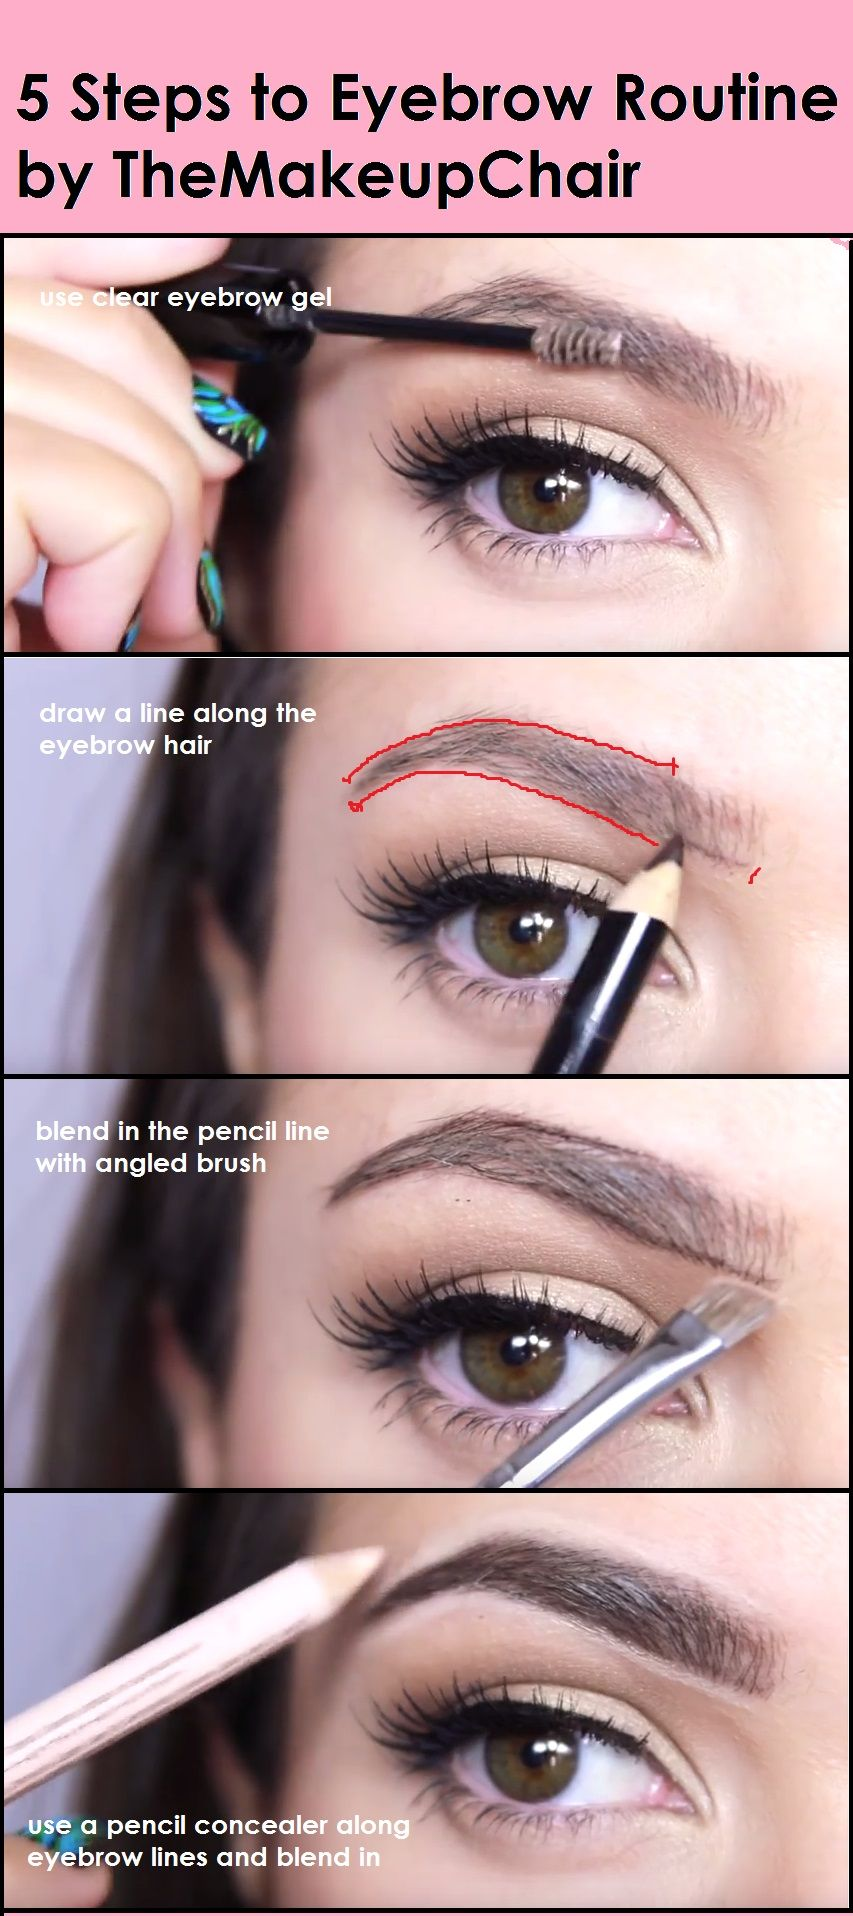 5 Steps. I've Posted Different Eye Brow Strategies. Pick